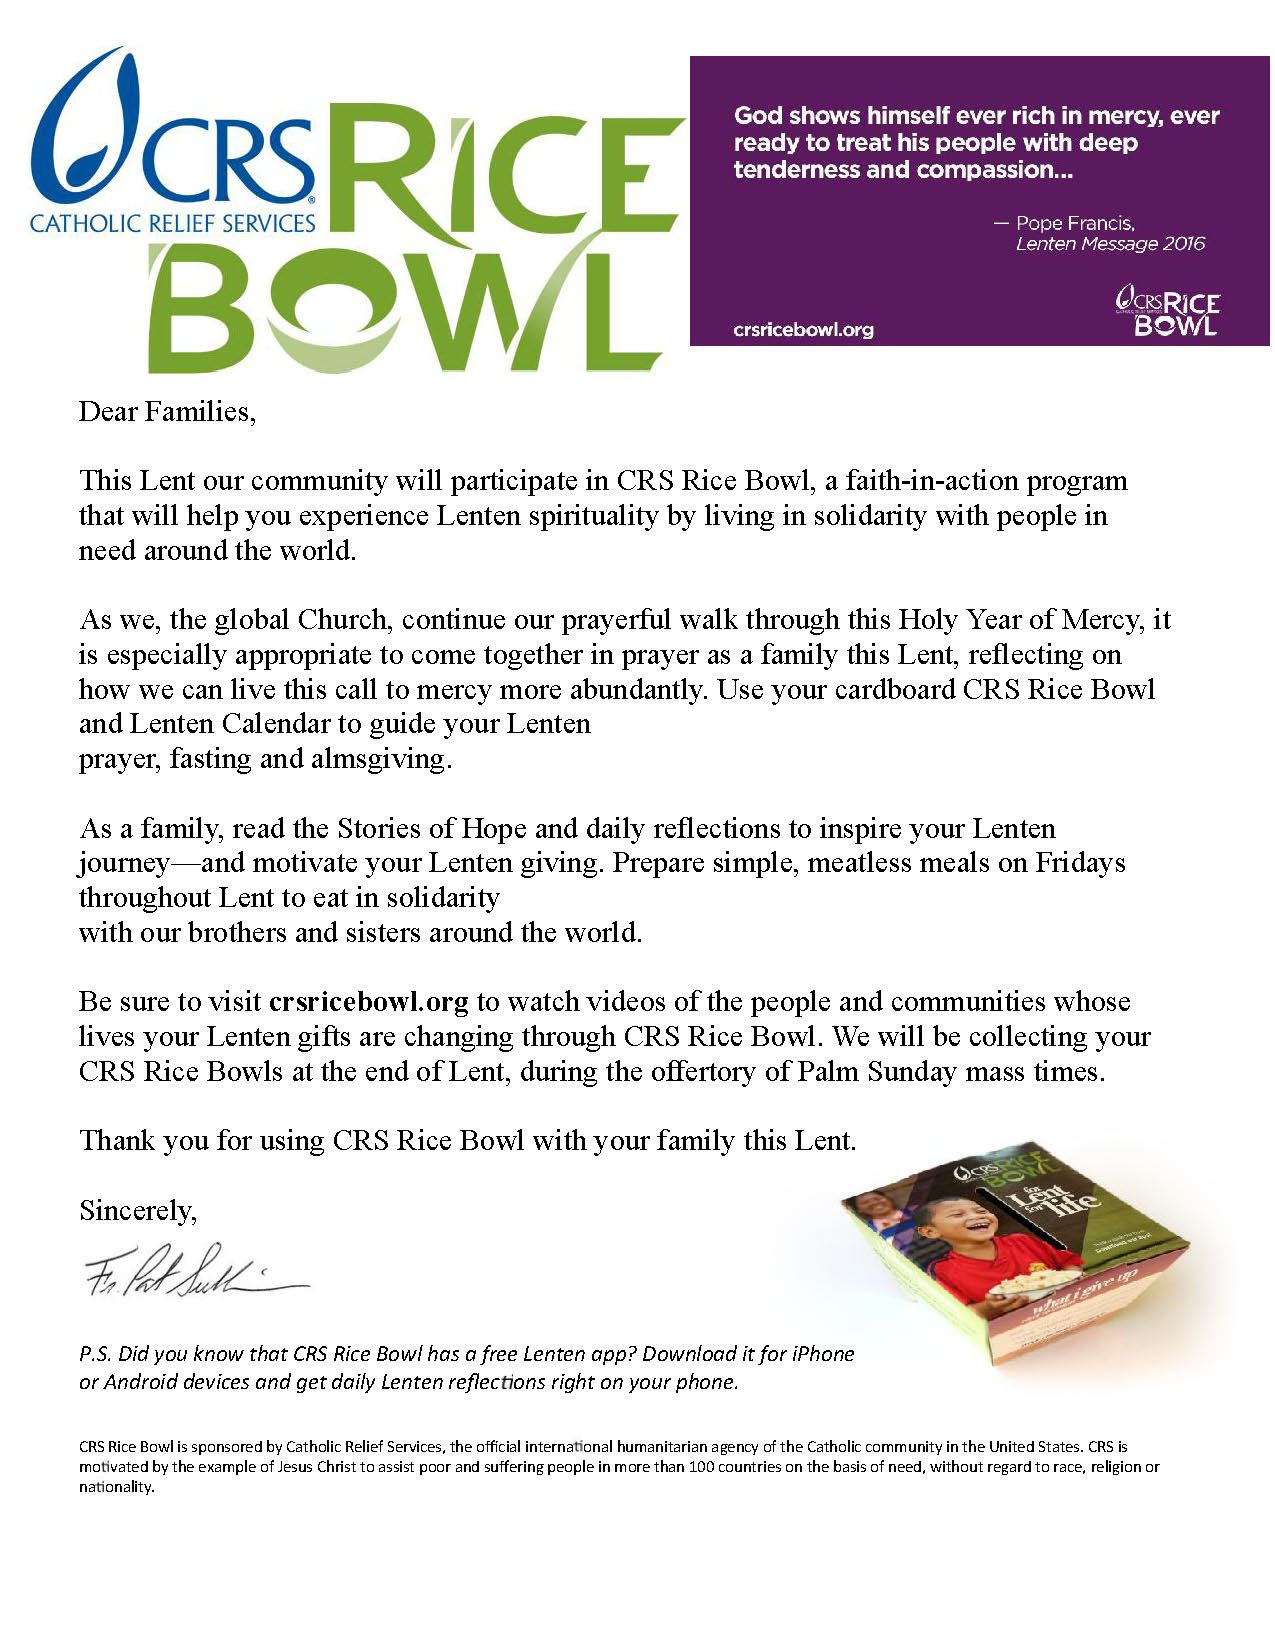 A Letter From Fr Pat About The Crs Rice Bowl Program Http Www Crsricebowl Org Catholic Relief Services Catholic Lettering